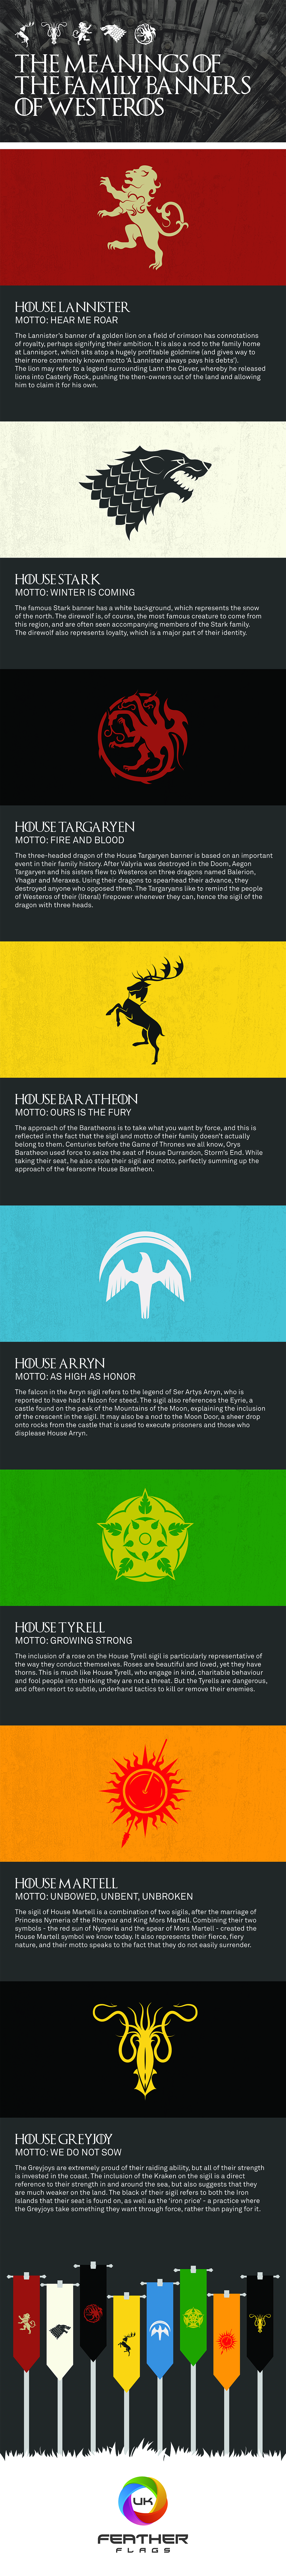 The Meanings of the Family Banners of Westeros